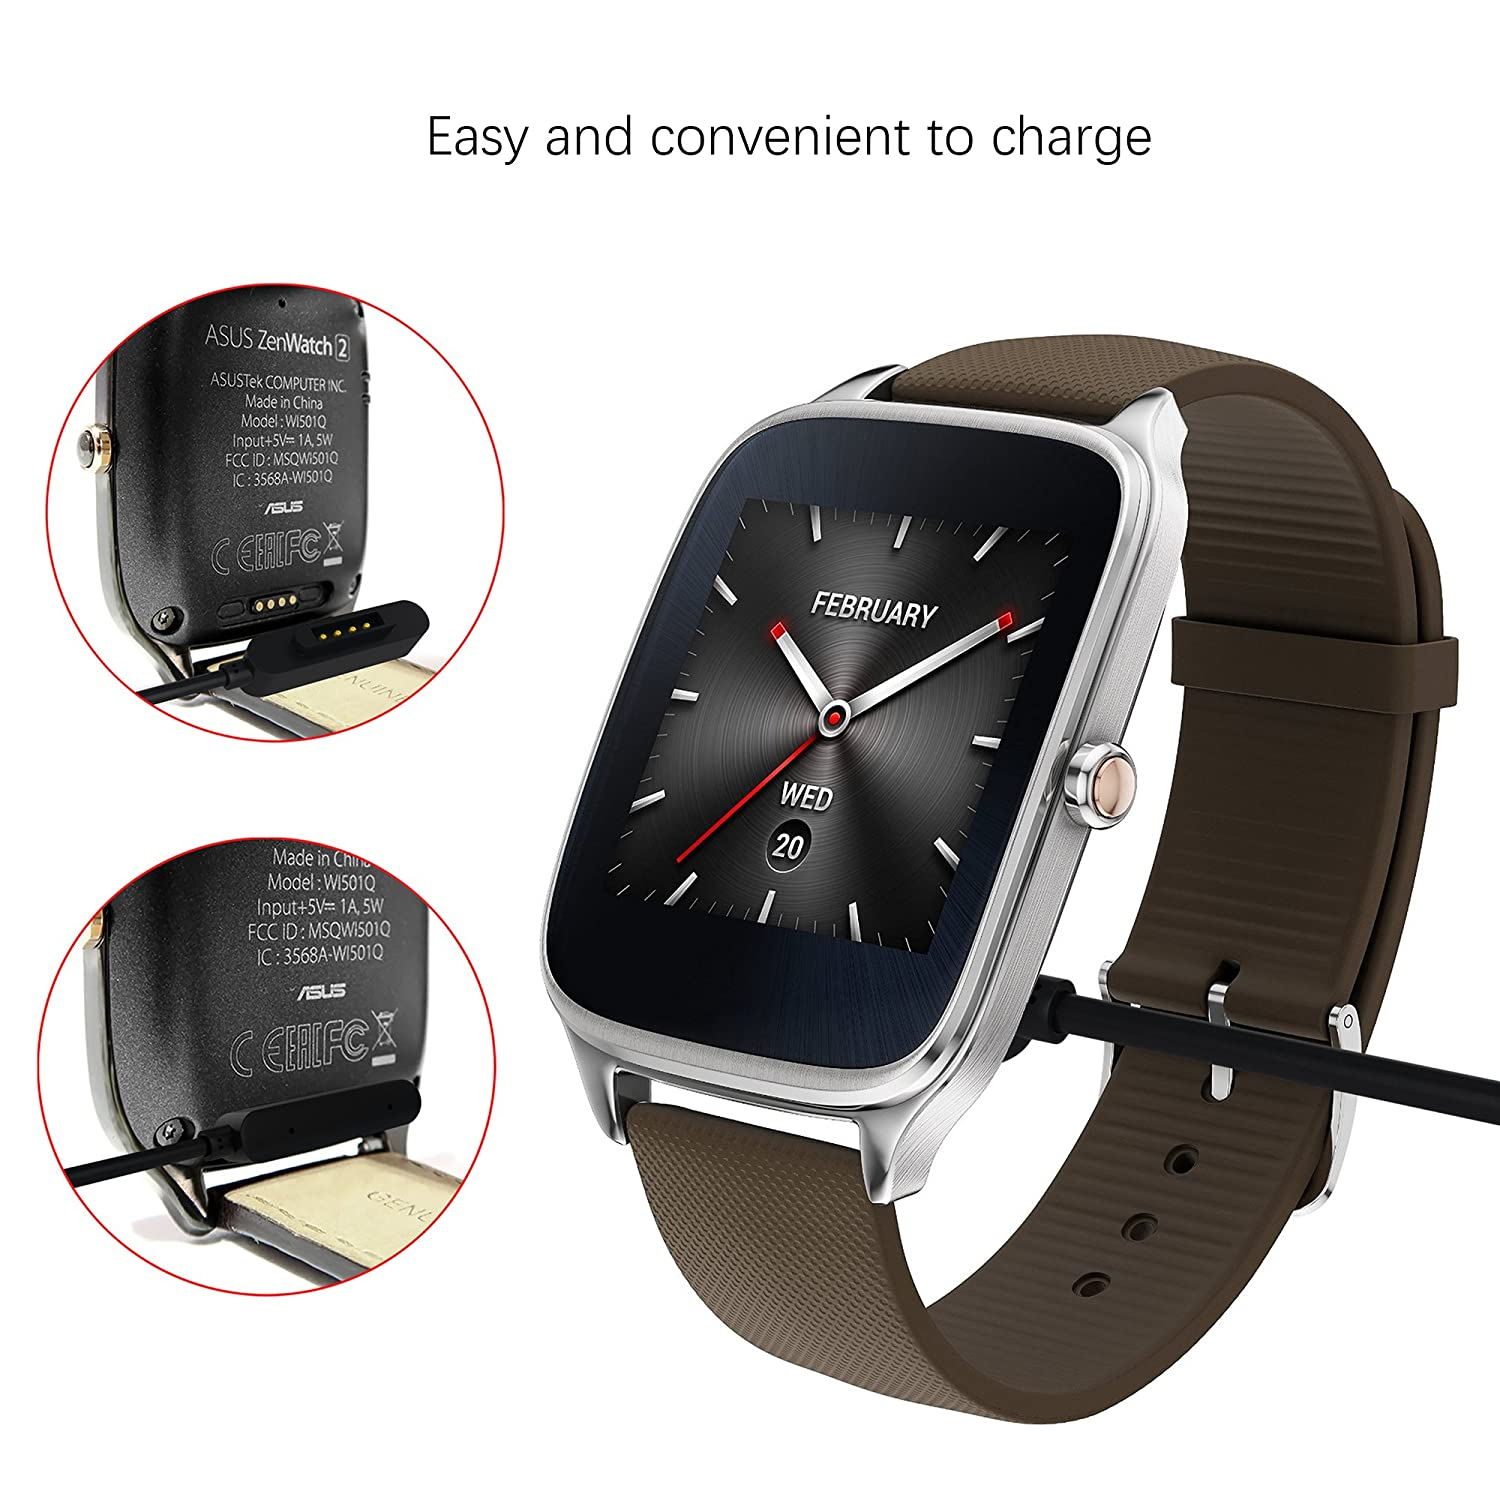 GOOQ Portable Charging USB Charger Cable for ASUS ZenWatch 2 ...